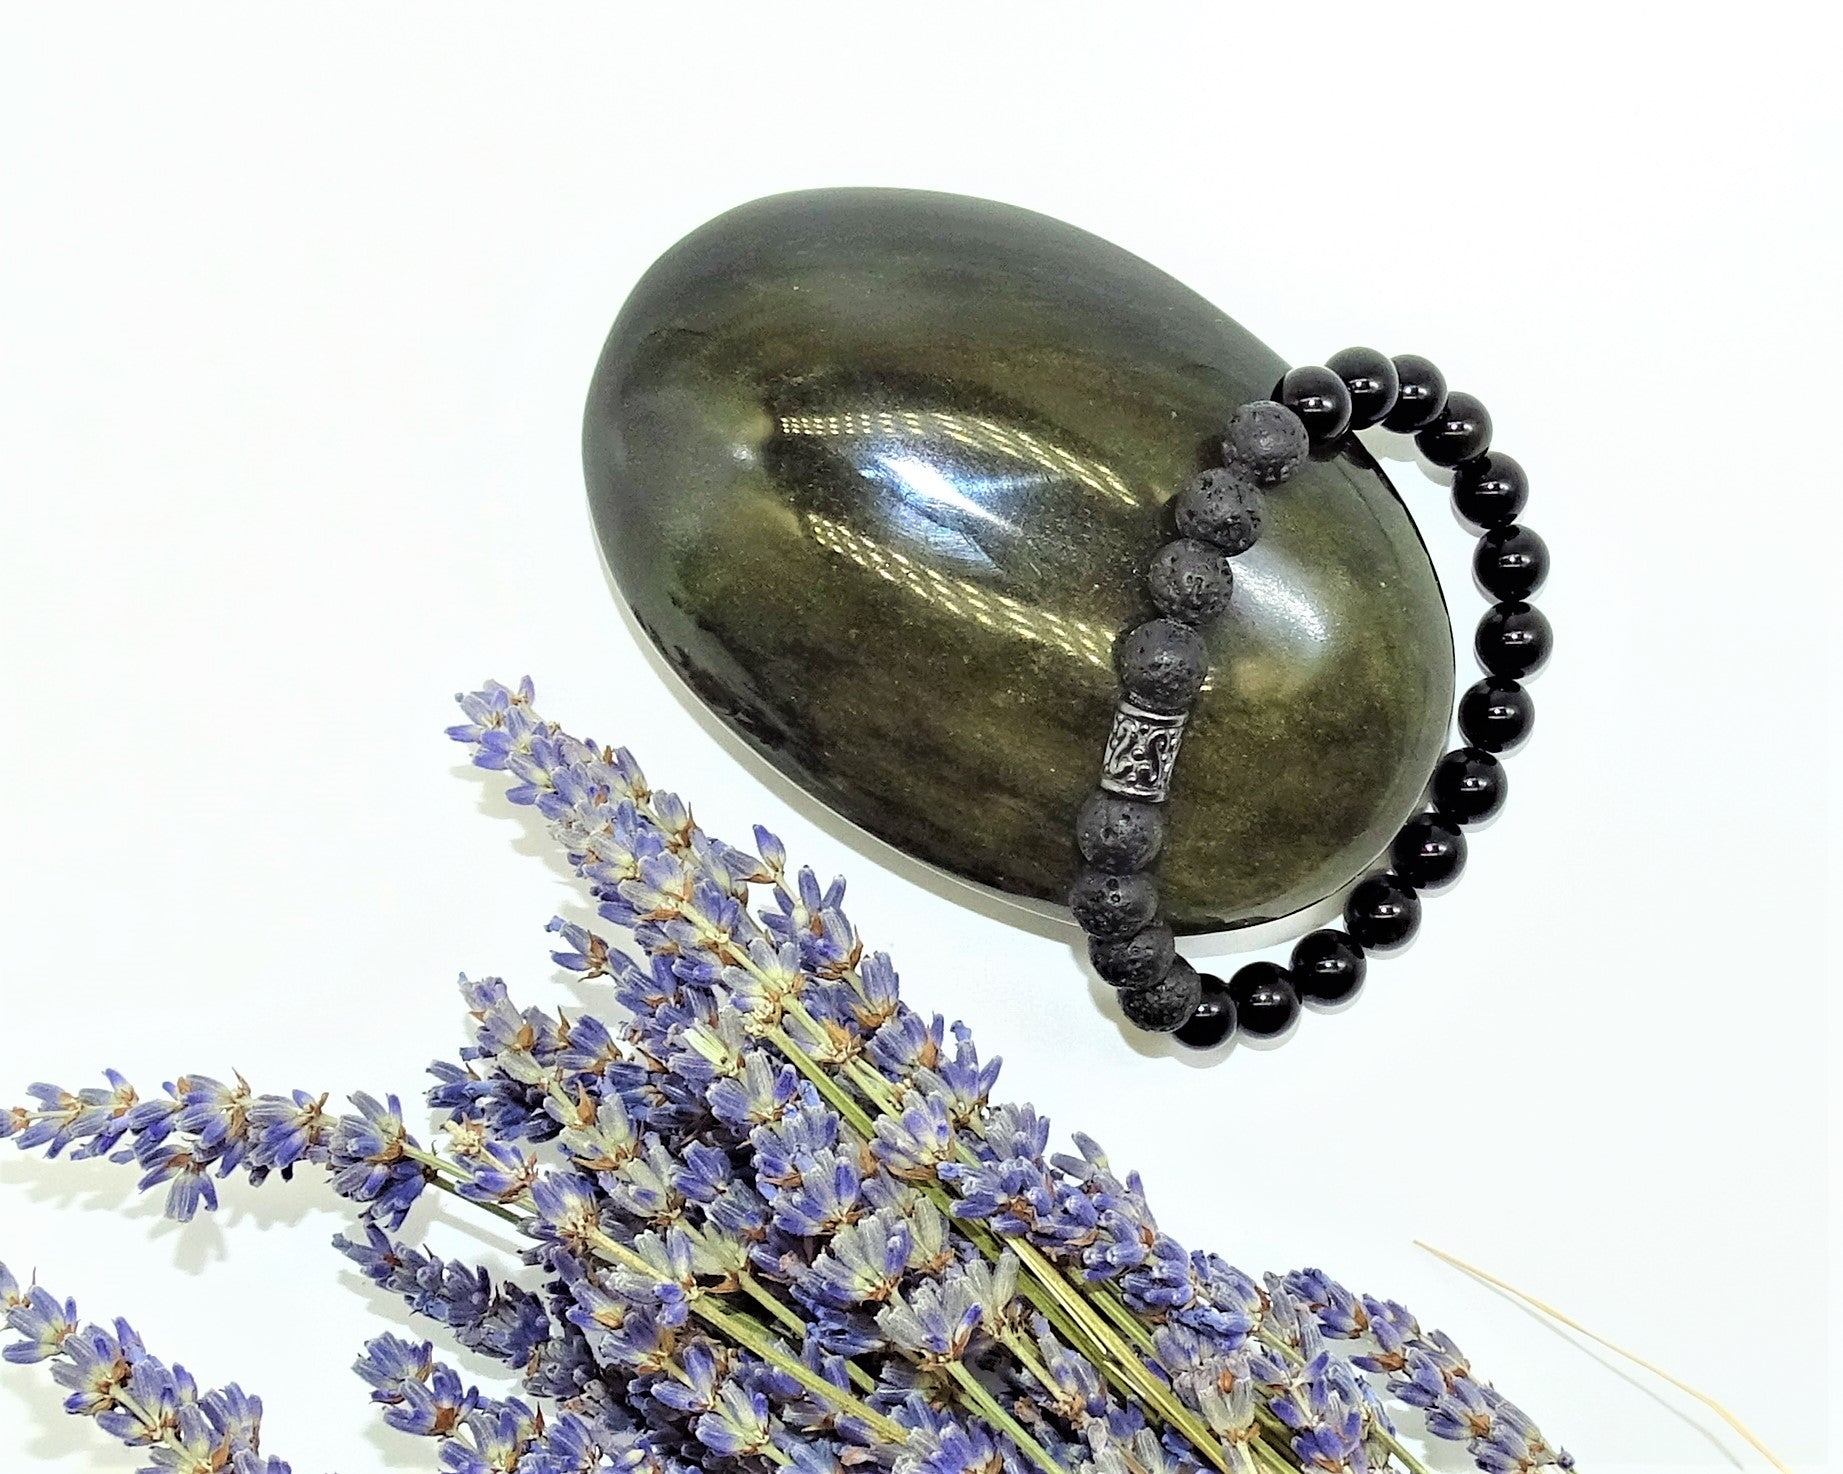 Black Obsidian & Lava Stone - Protection, Courage, Deep Healing & Fresh Start